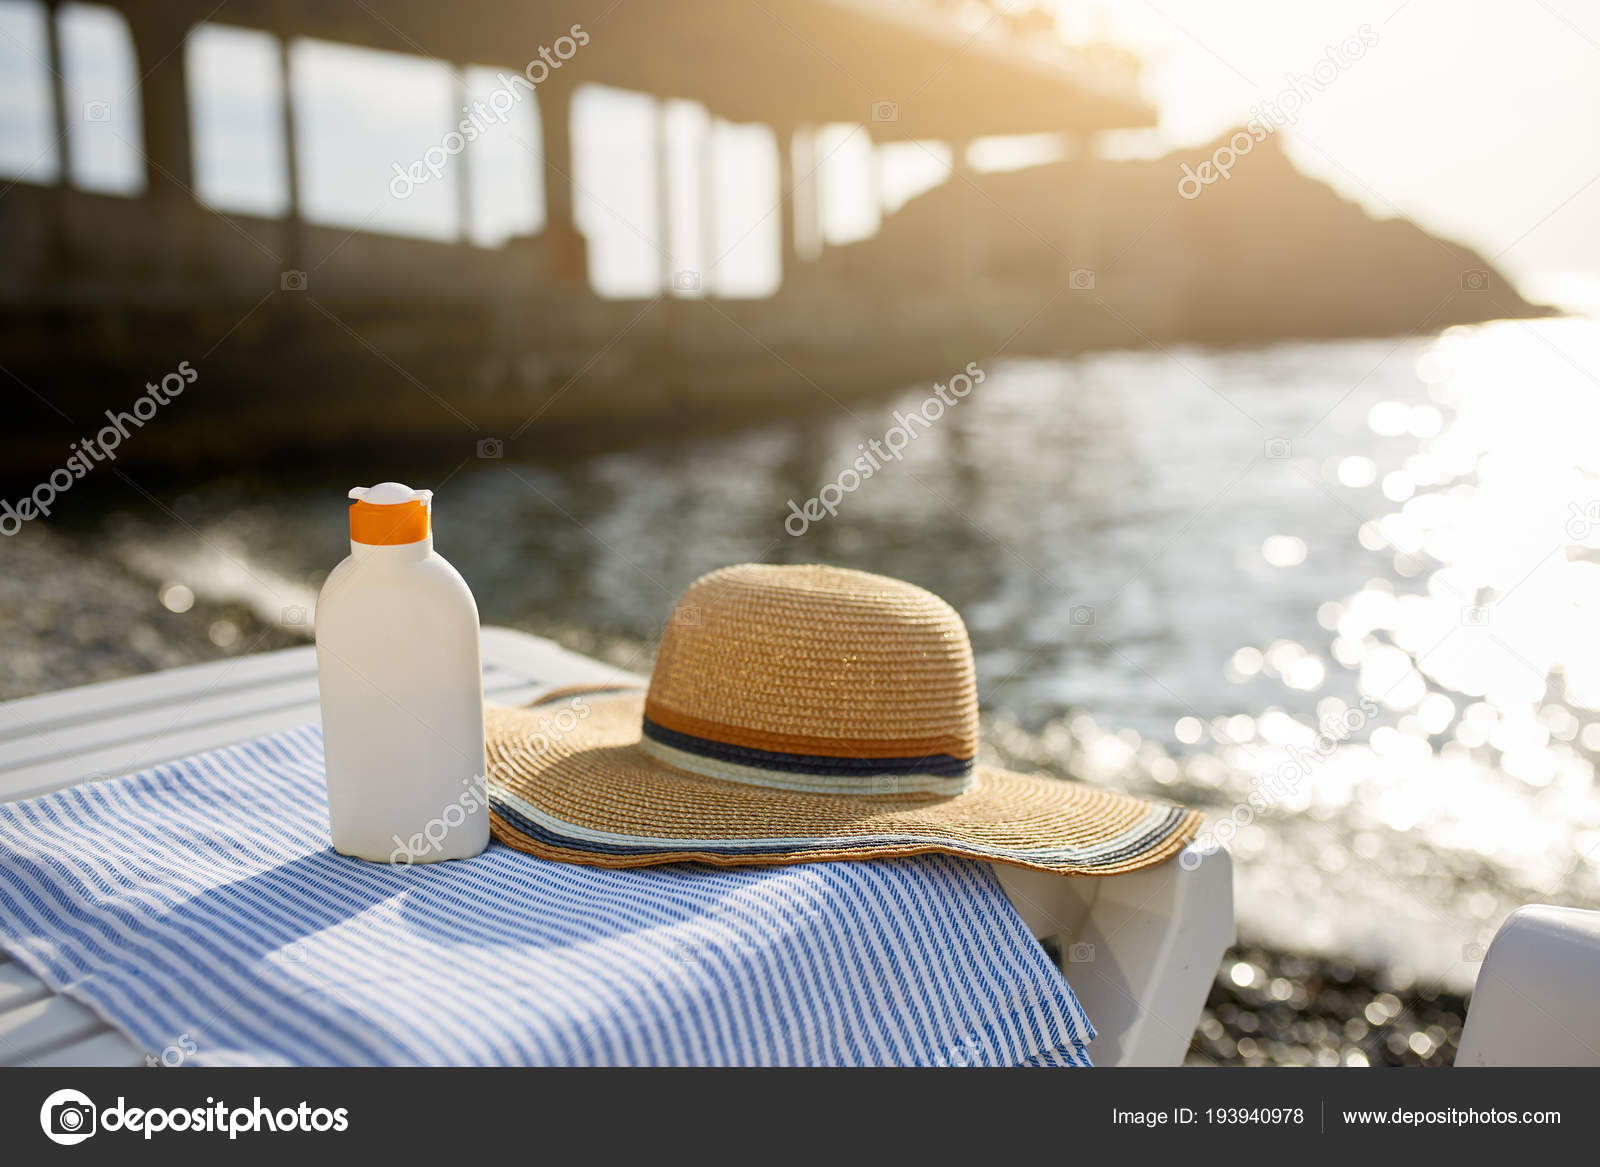 Suntan Cream Bottle On Beach Towel With Sea Shore On Background. Sunscreen  On Deck Chair Outdoors On Sunrise Or Sunset At Luxury Spa Resort.